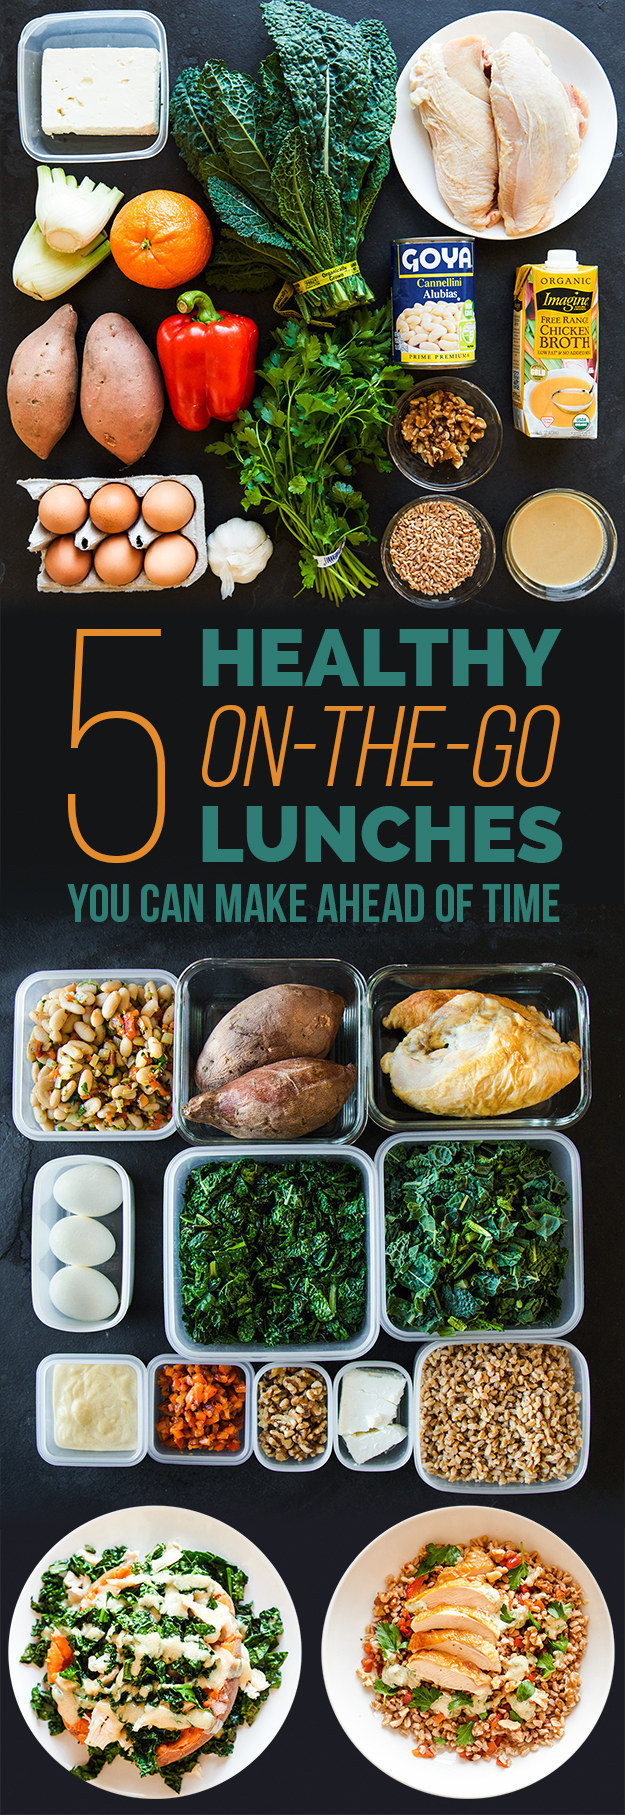 Not Great About Planning Your Taketowork Lunches? Here's A Step 7 Ways To  Master Your